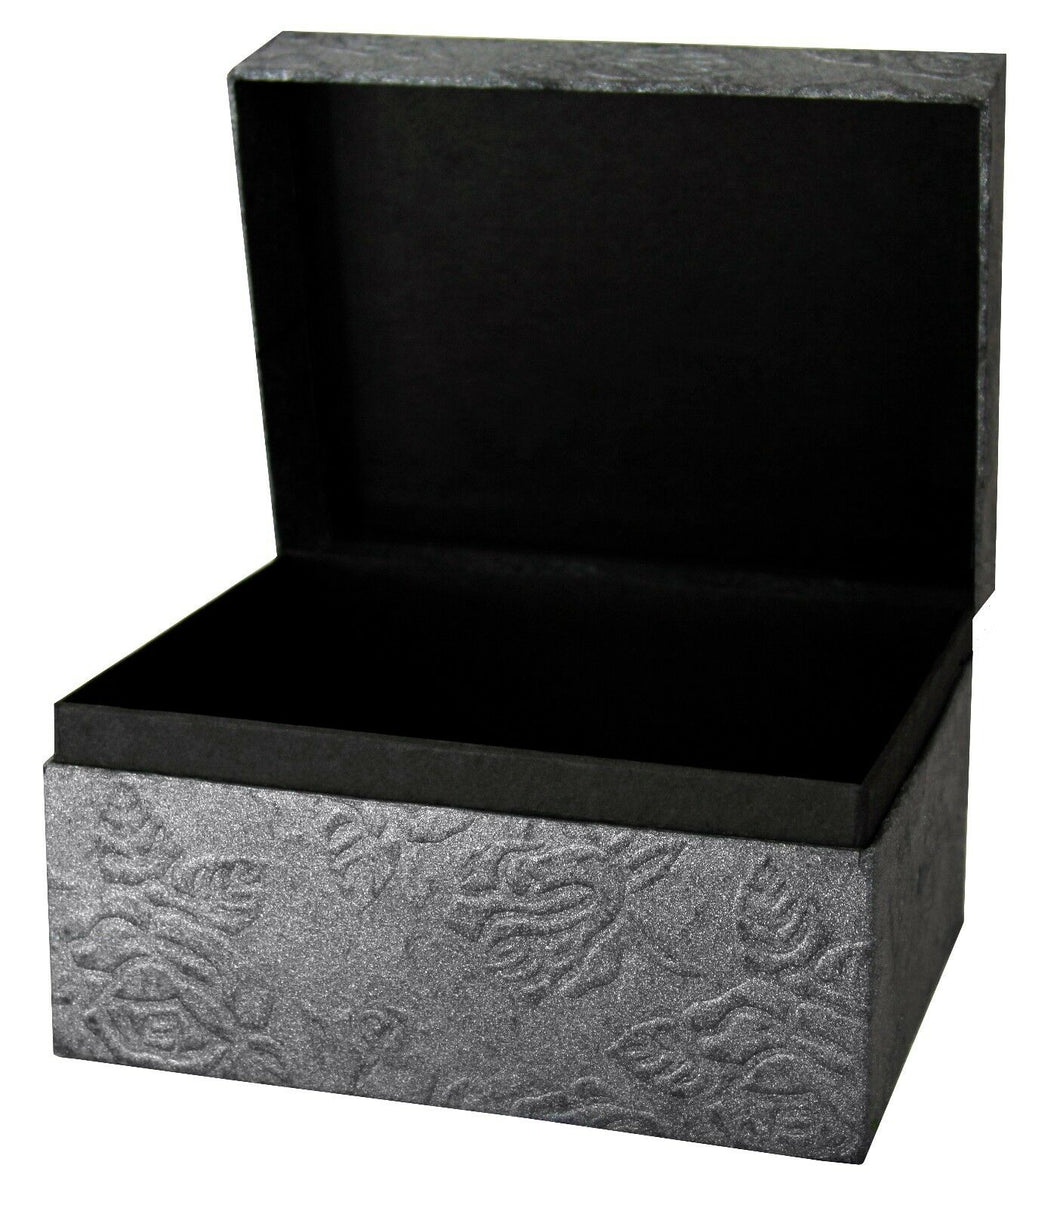 Large/Adult 220 Cubic Inch Embossed Metallic Black Chest Earthurn Cremation Urn